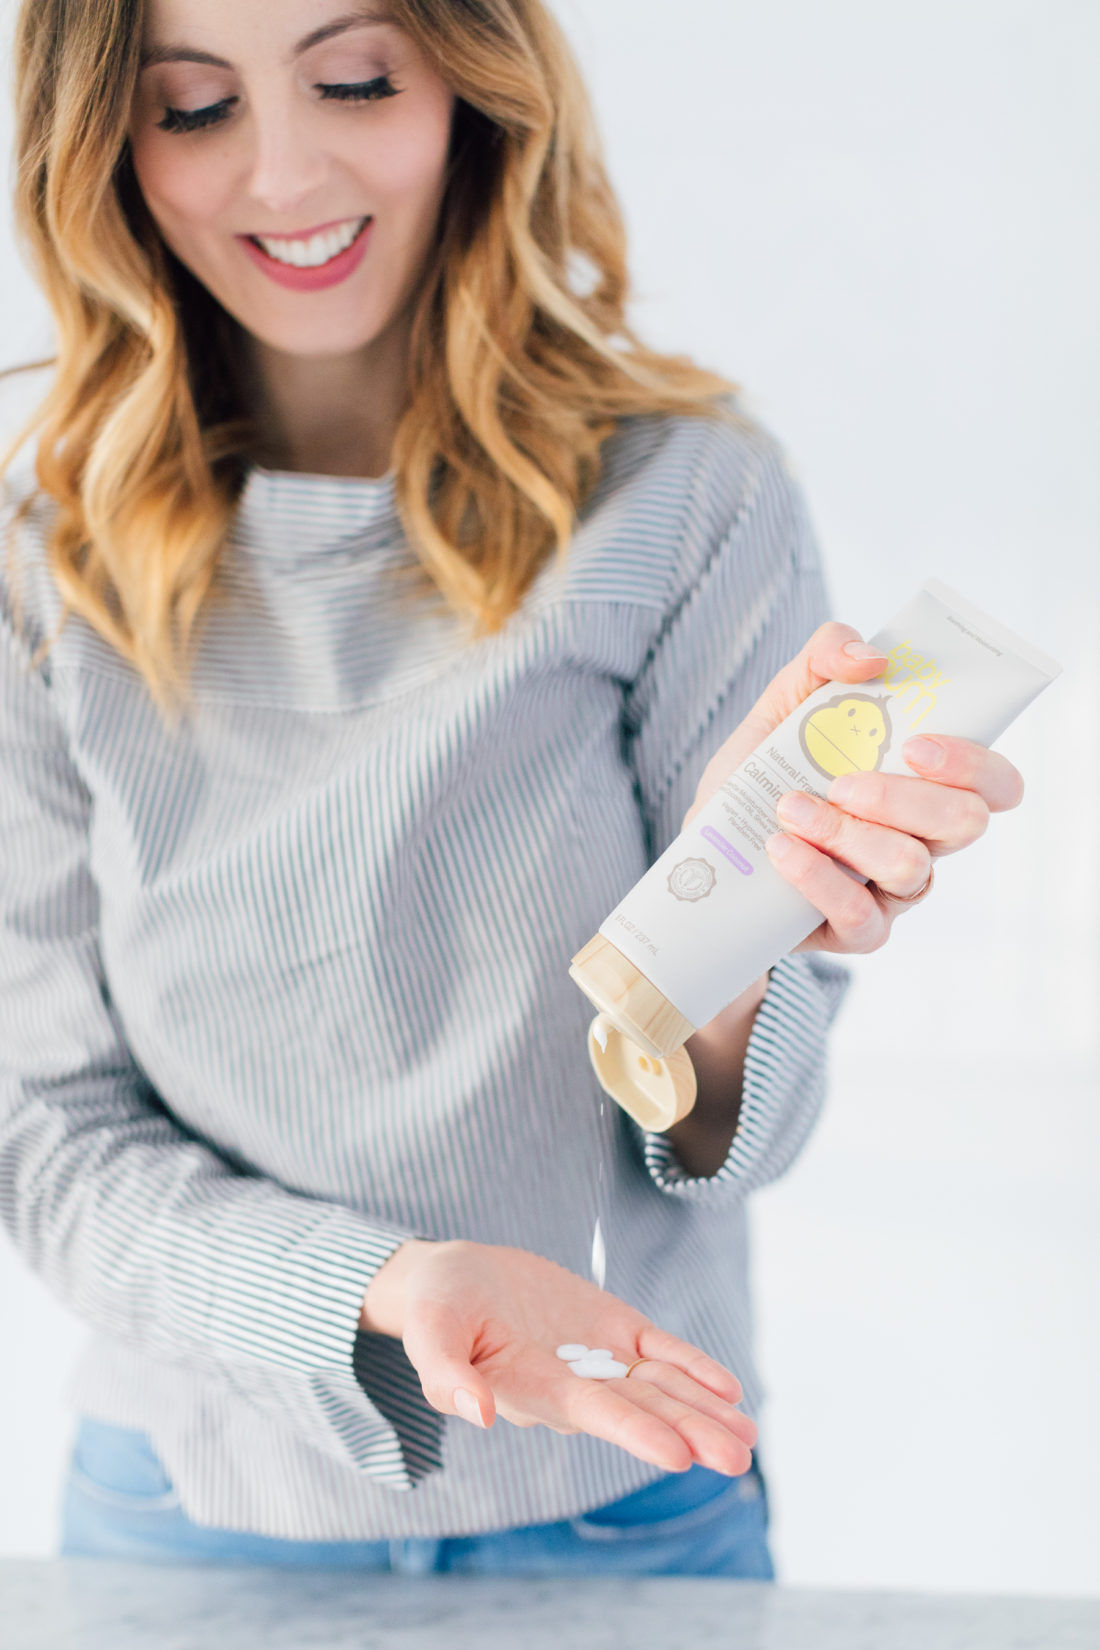 Eva Amurri Martino wears a striped boatneck top, and squeezes all natural lotion in to her hand